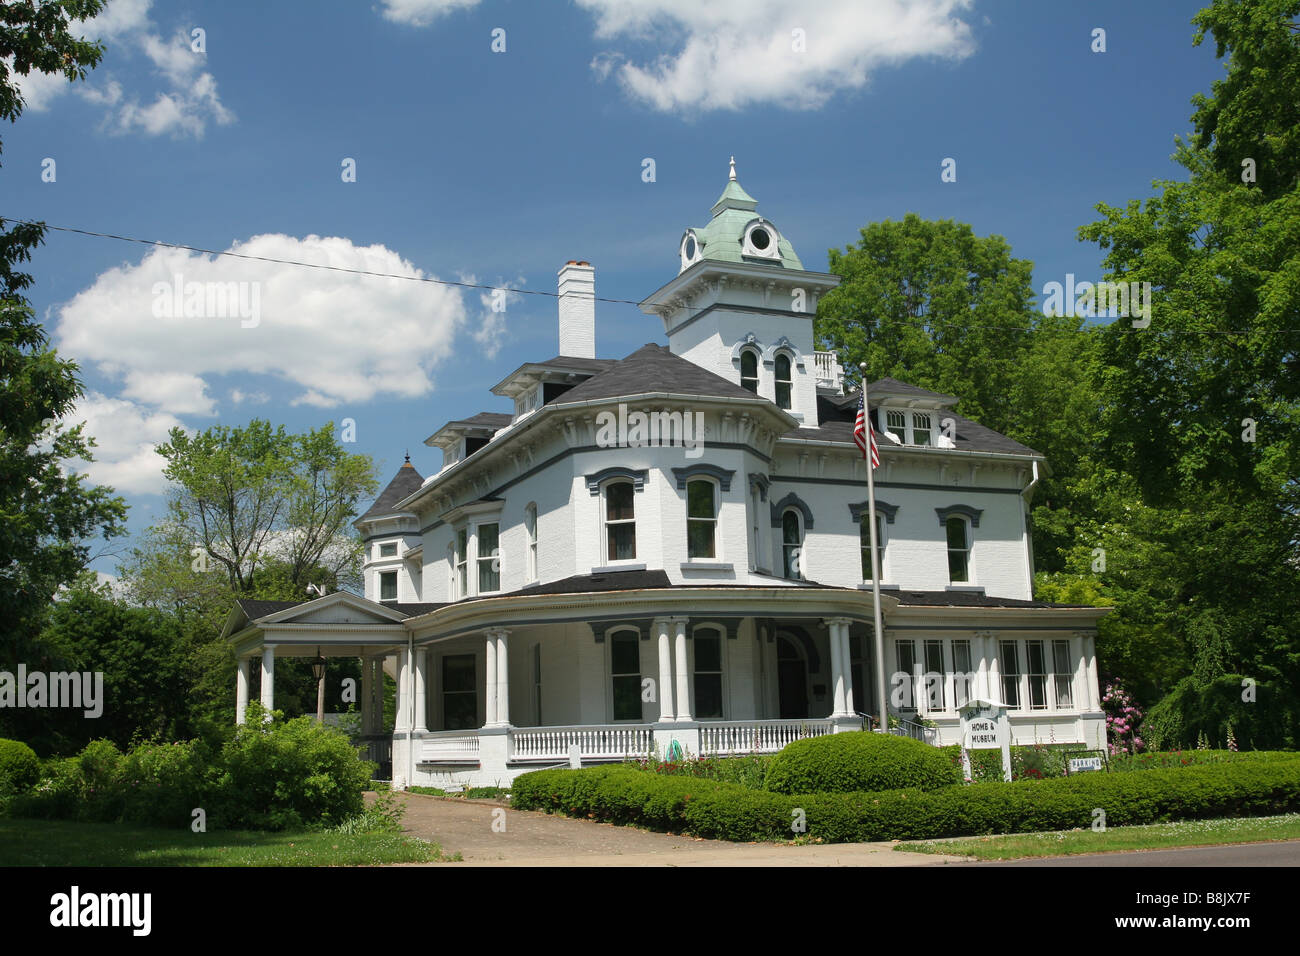 Jeremiah E Reeves Victorian Home Dover Ohio Note wire across sky and house - Stock Image